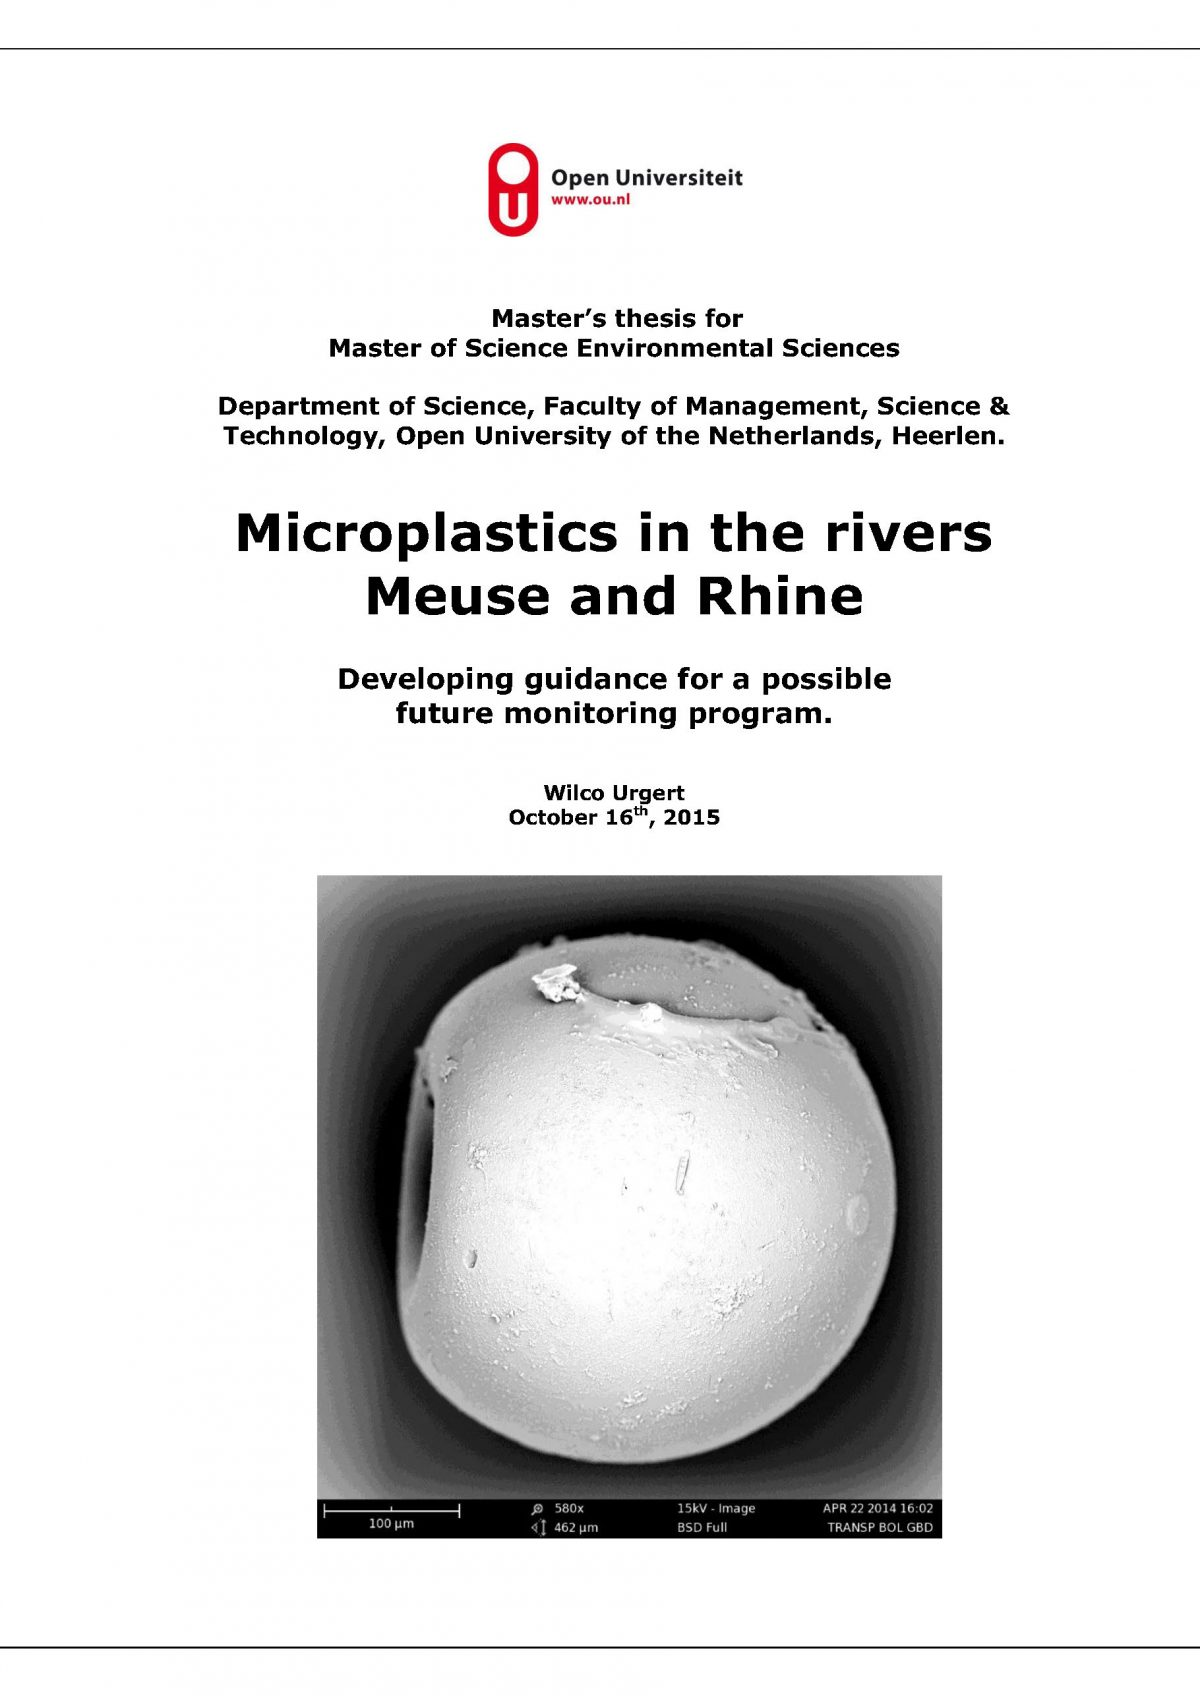 Microplastics in the rivers Meuse and Rhine